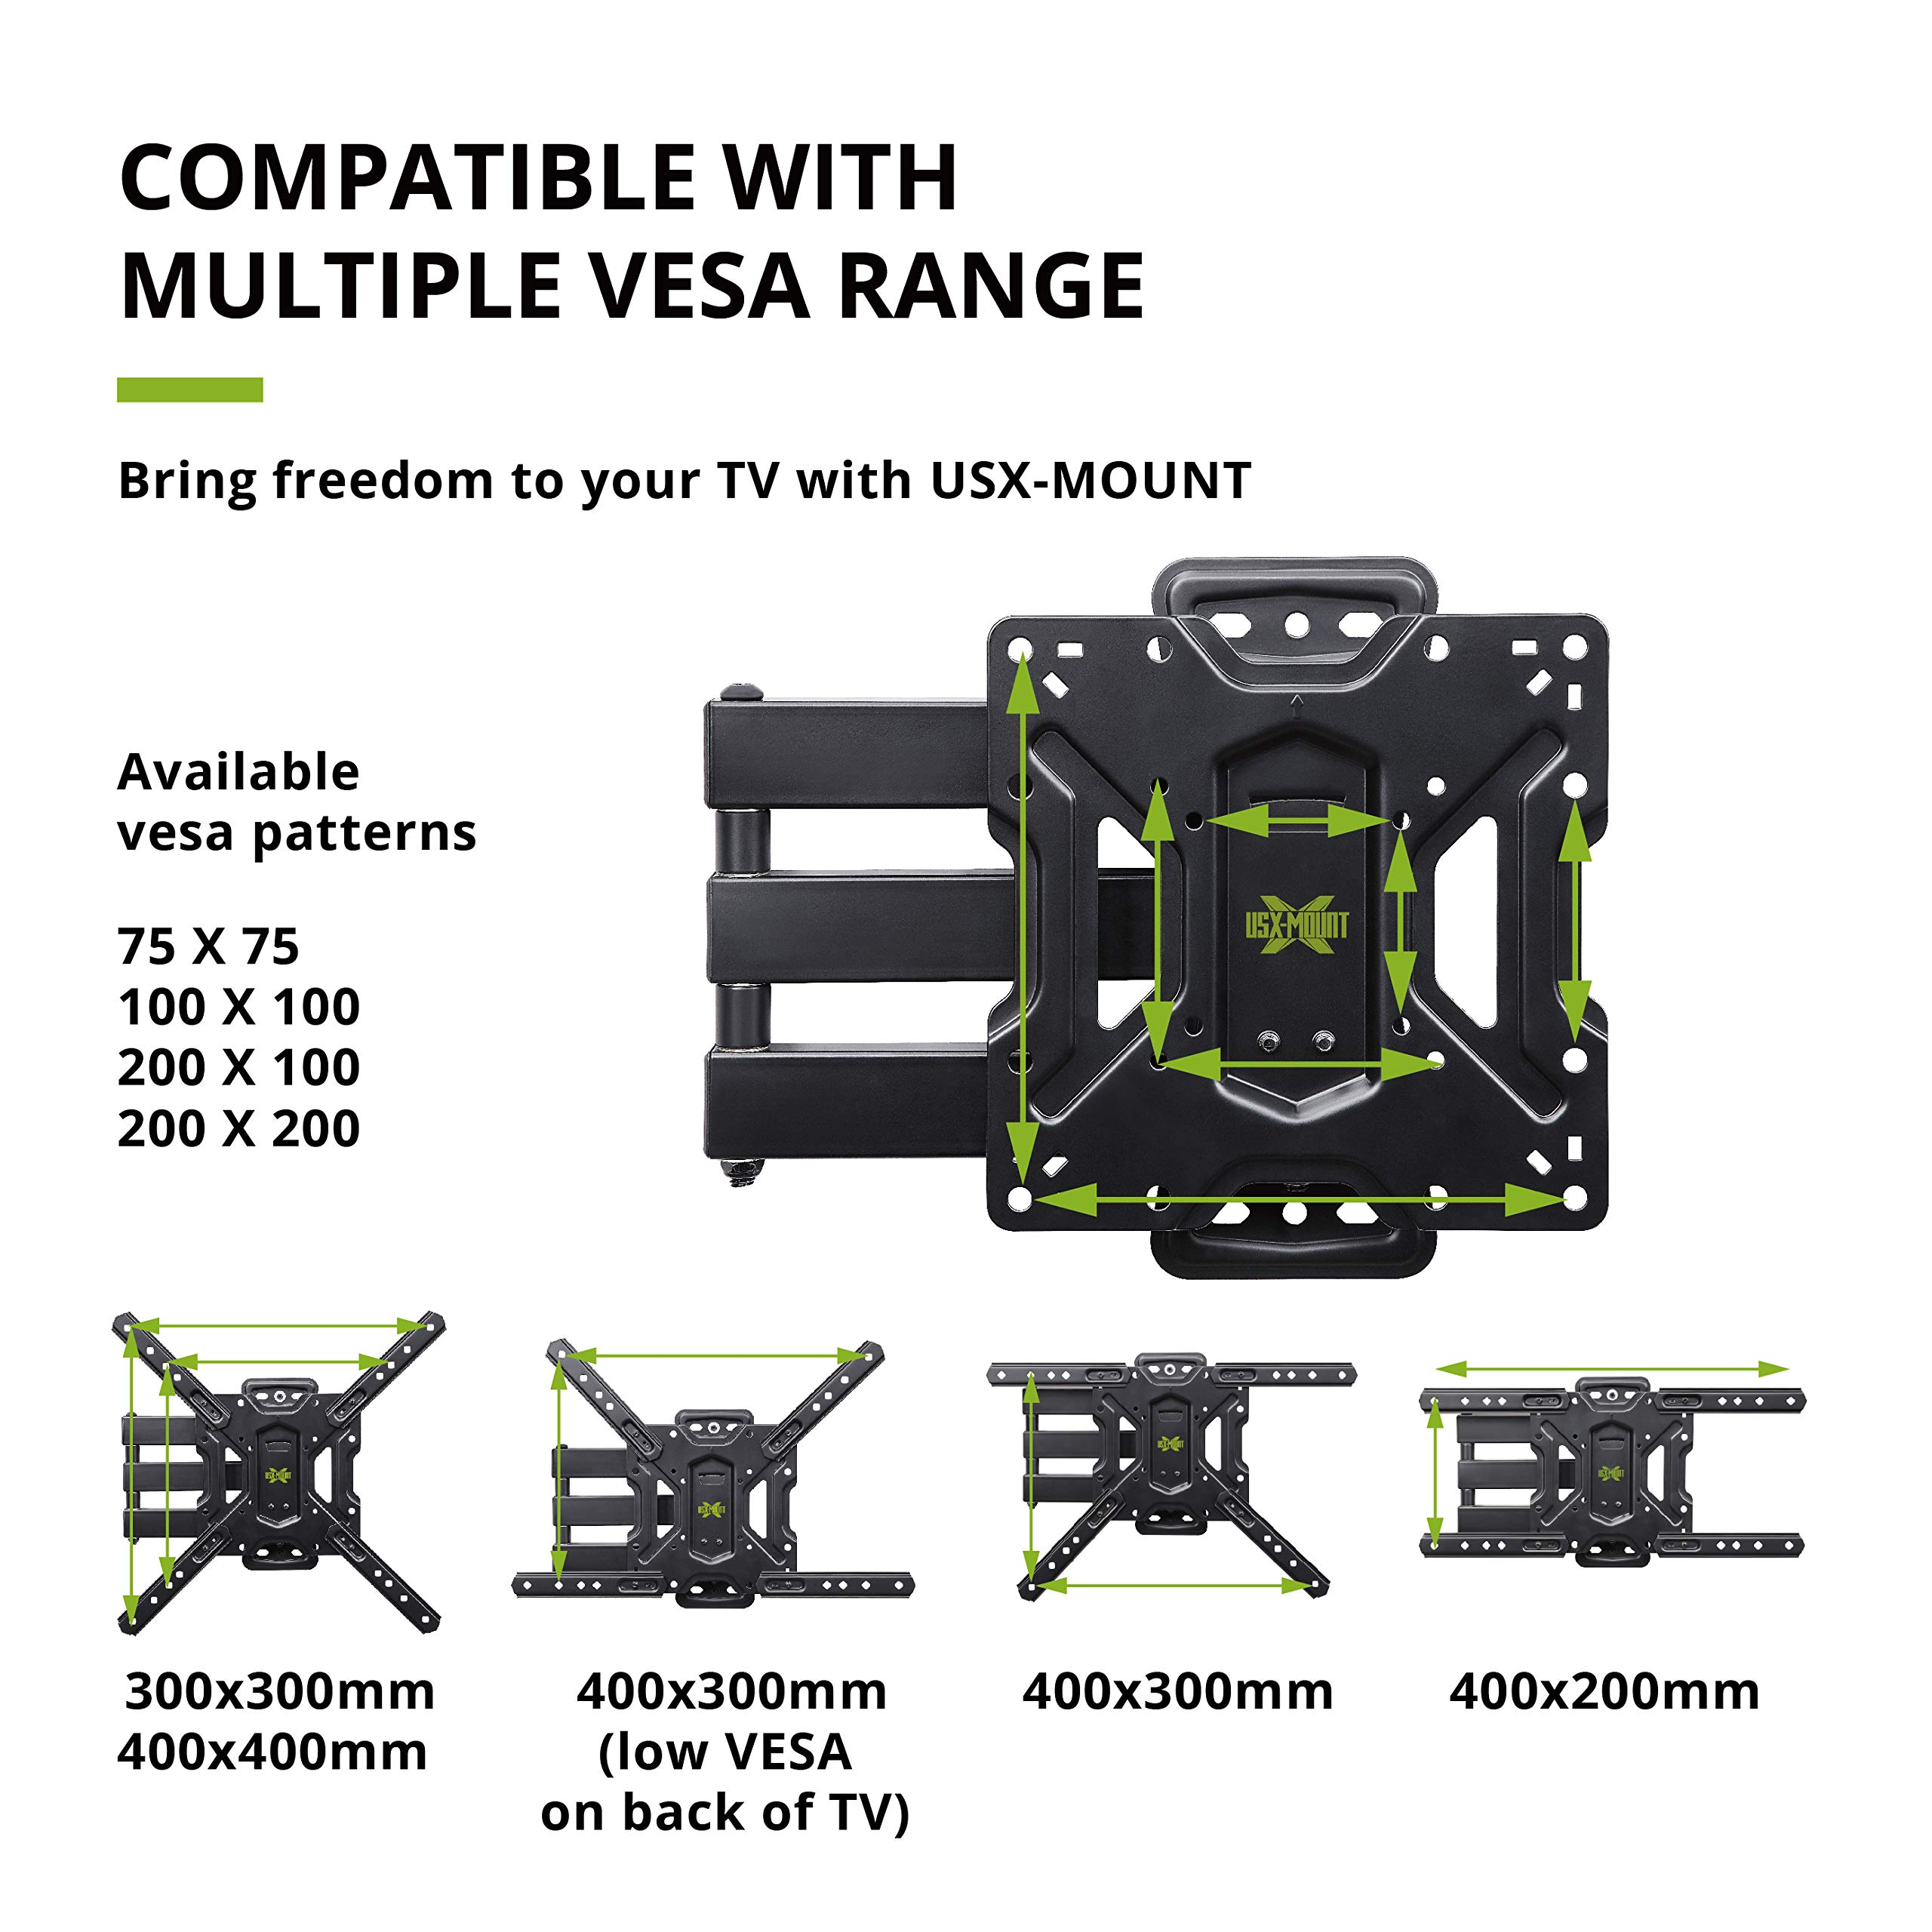 USX MOUNT Full Motion Swivel Articulating Tilt TV Wall Mount Bracket for 26-55'' LED, OLED, 4K TVs-Fit for 32, 40, 50 TV with VESA Up to 400x400mm-Weight Capacity Up to 60lbs by USX MOUNT (Image #2)